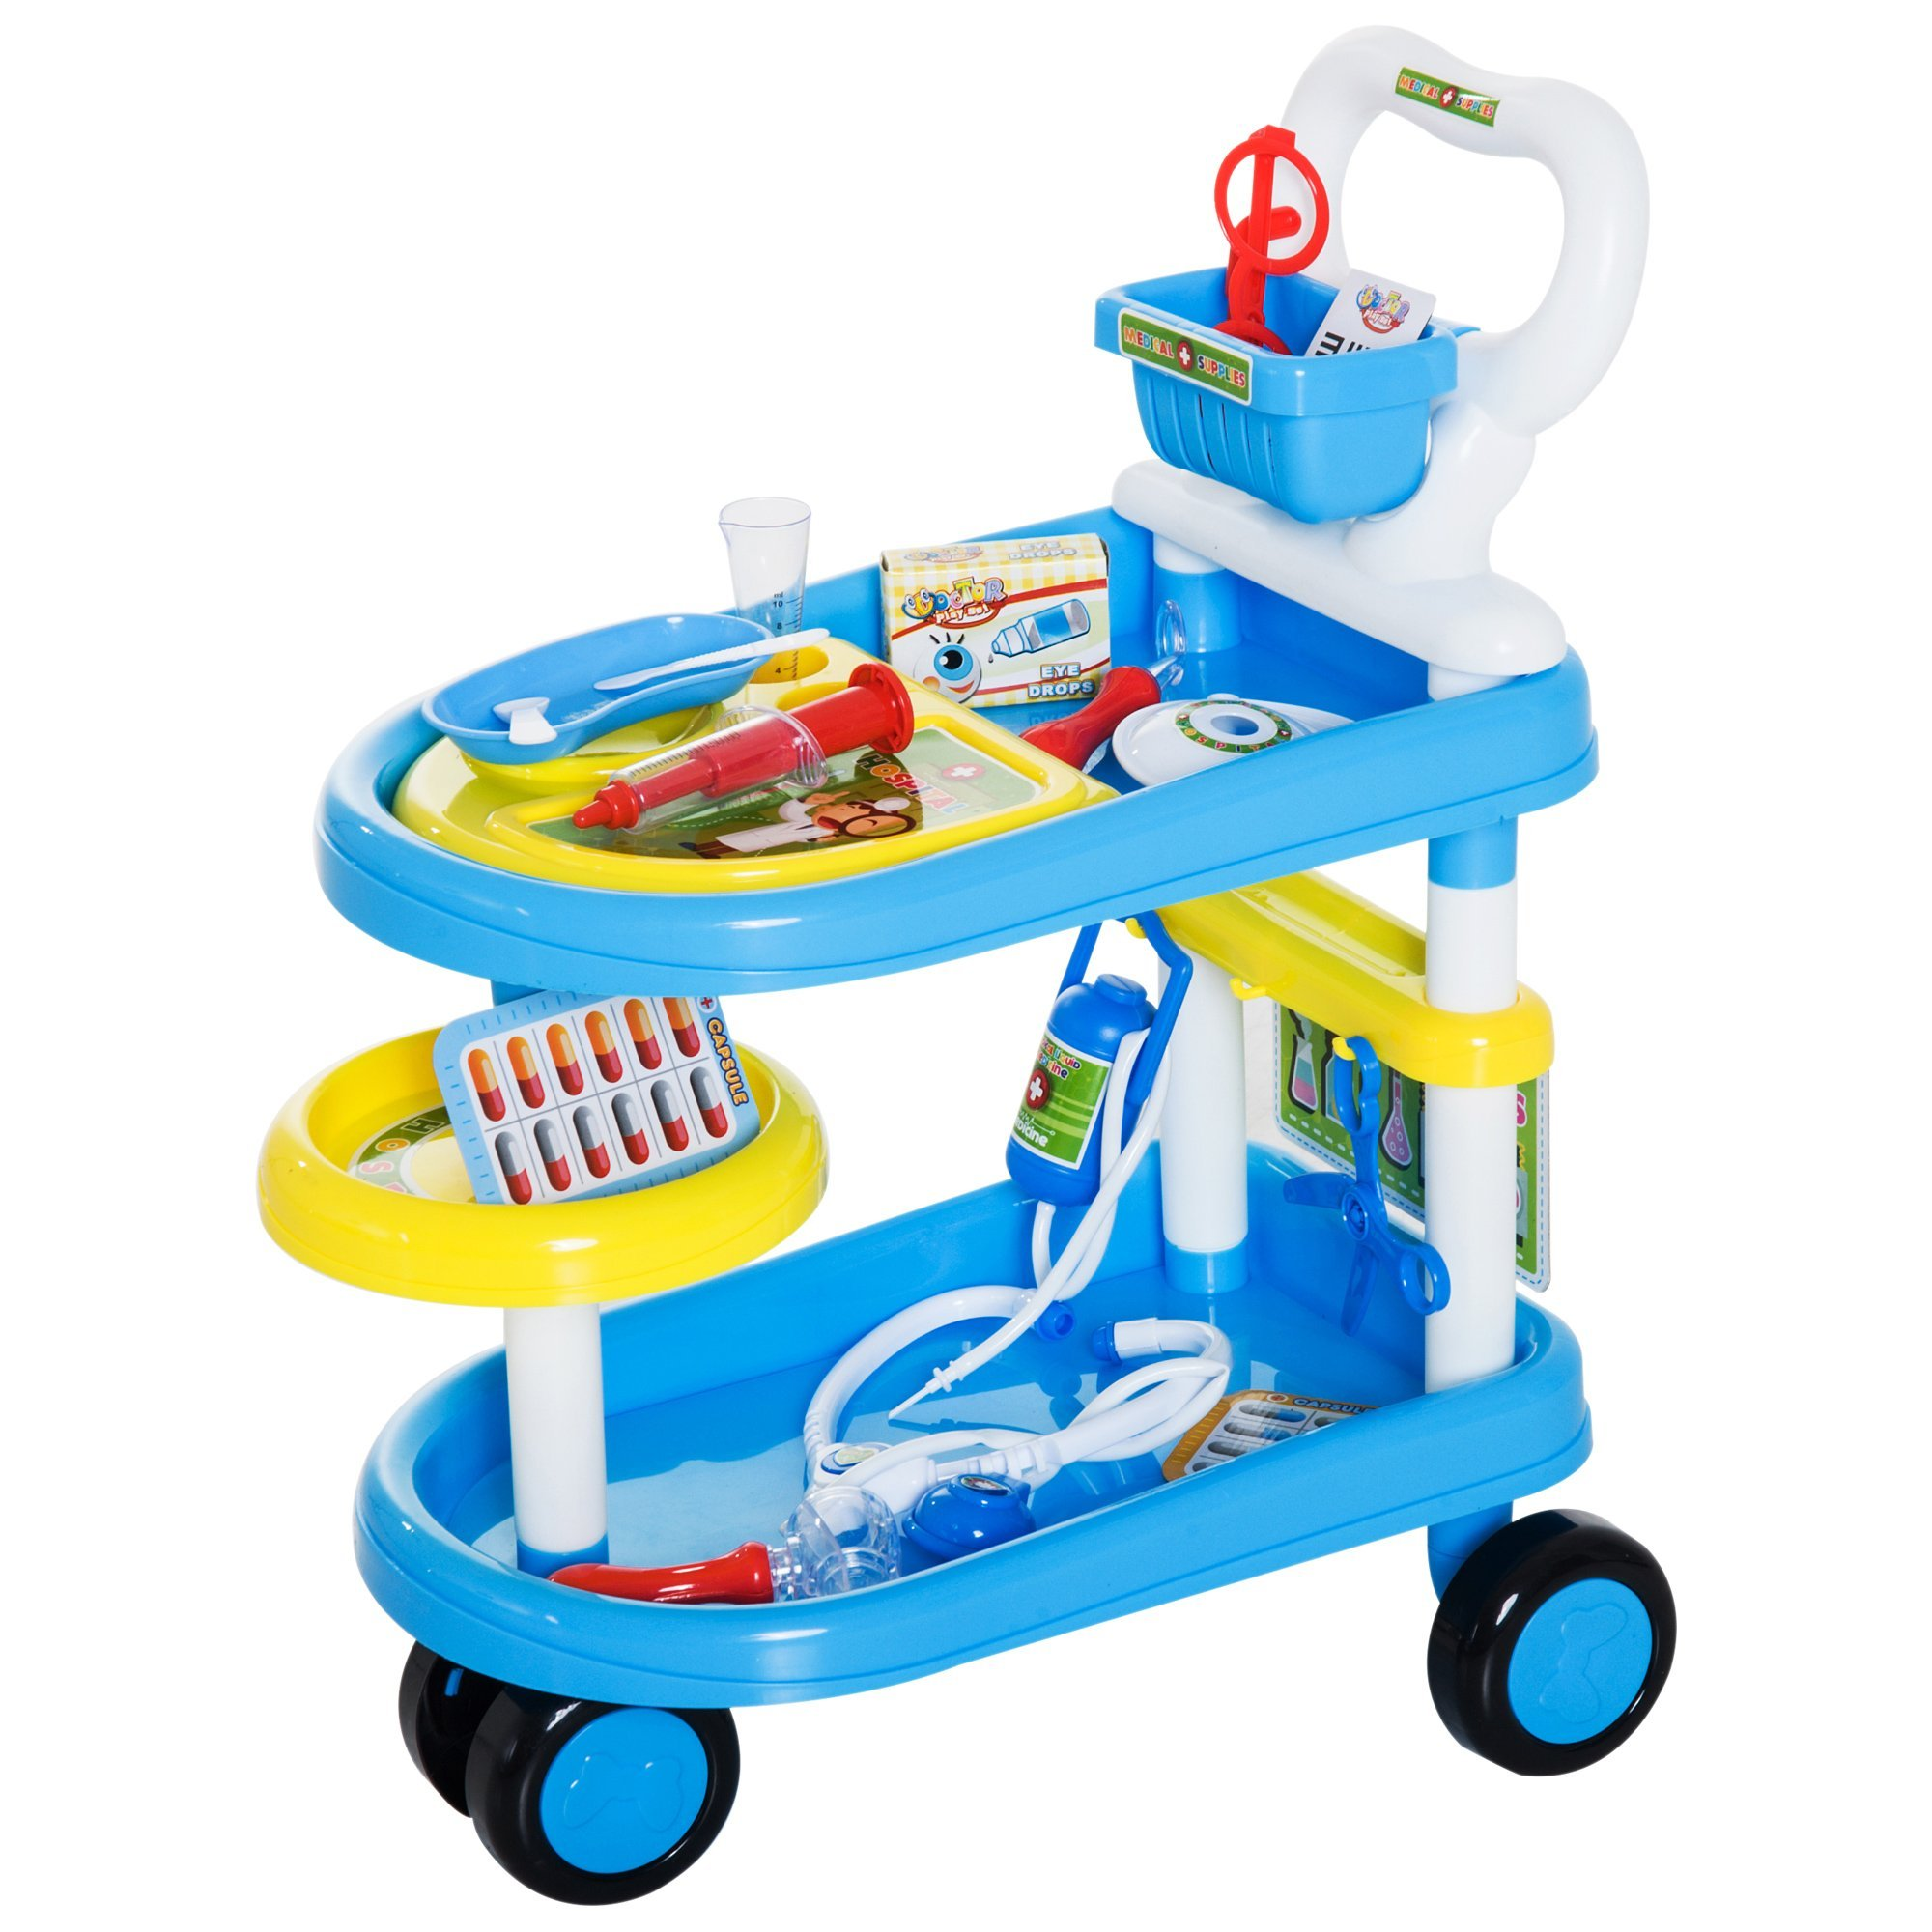 Qaba 37 Piece 2-Tier Kids Doctor Trolley Playset with Medical Accessories